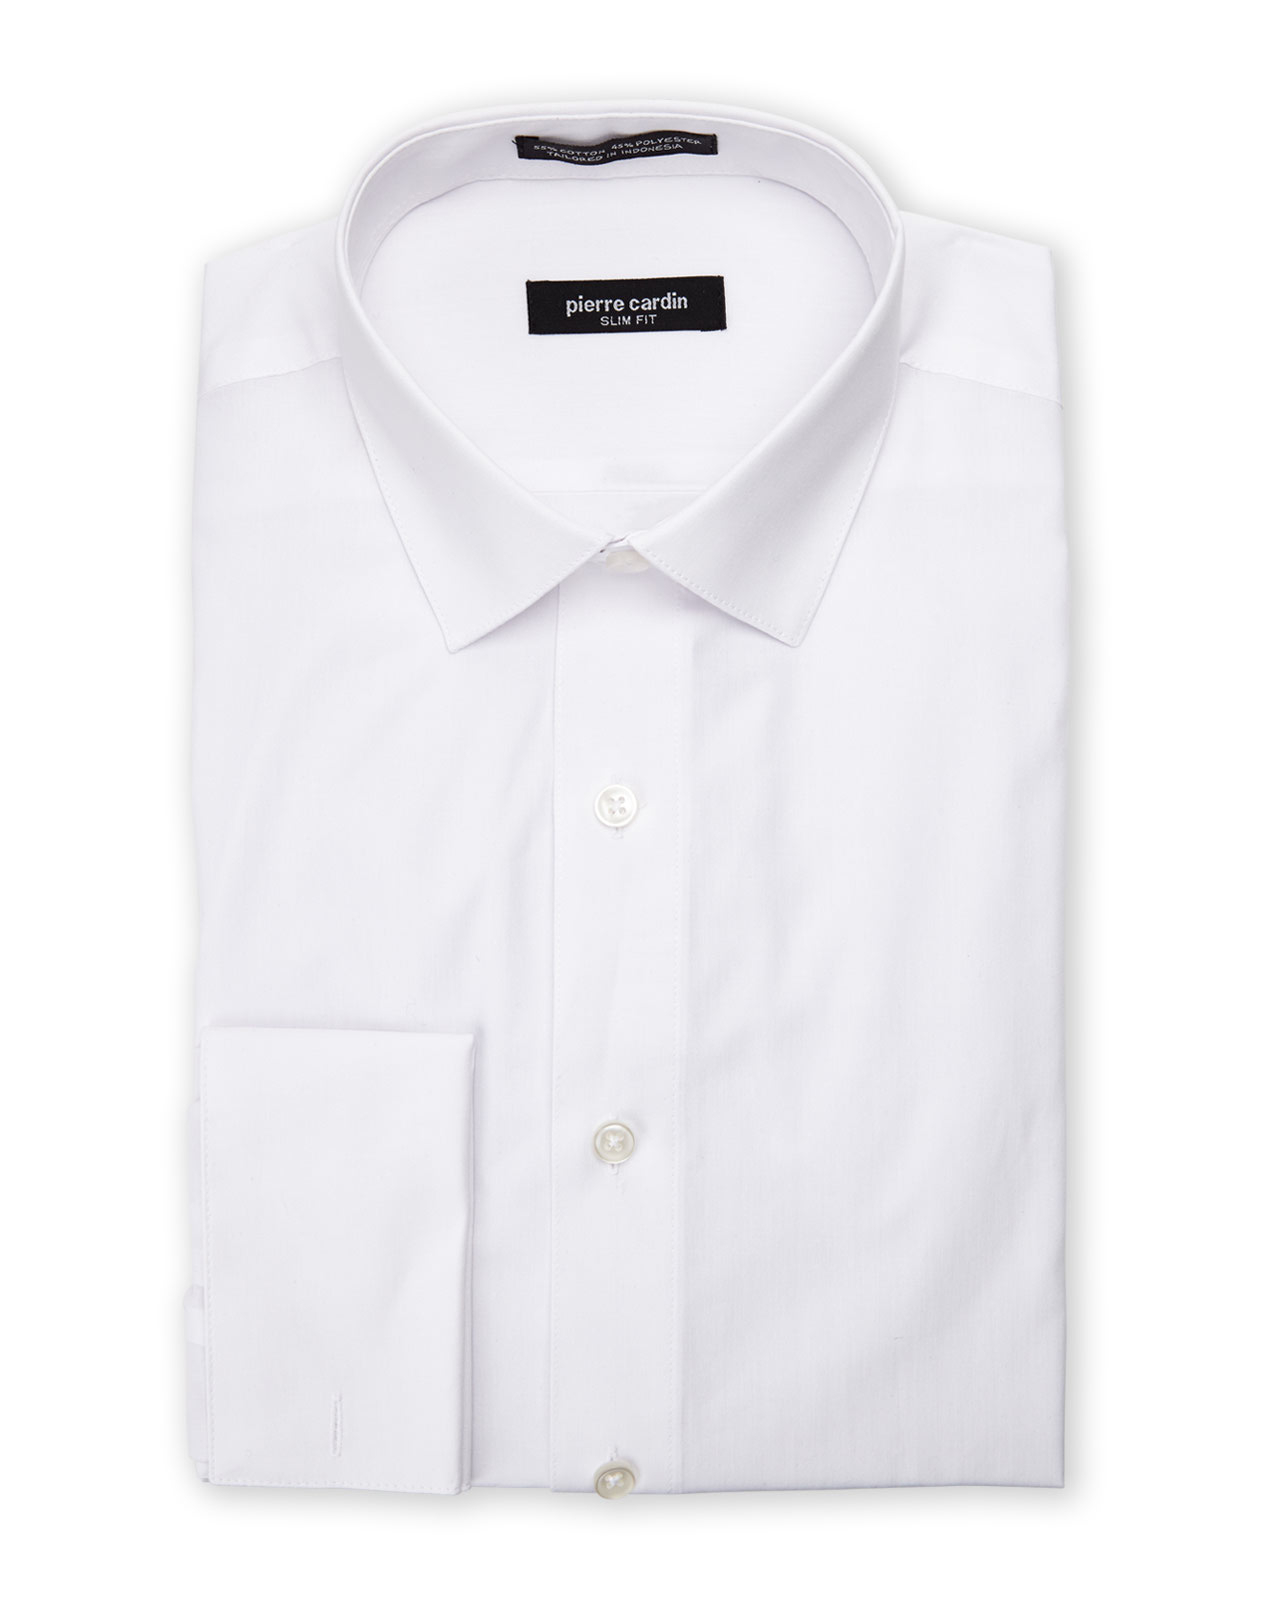 Pierre cardin white slim fit french cuff dress shirt in White french cuff shirt slim fit